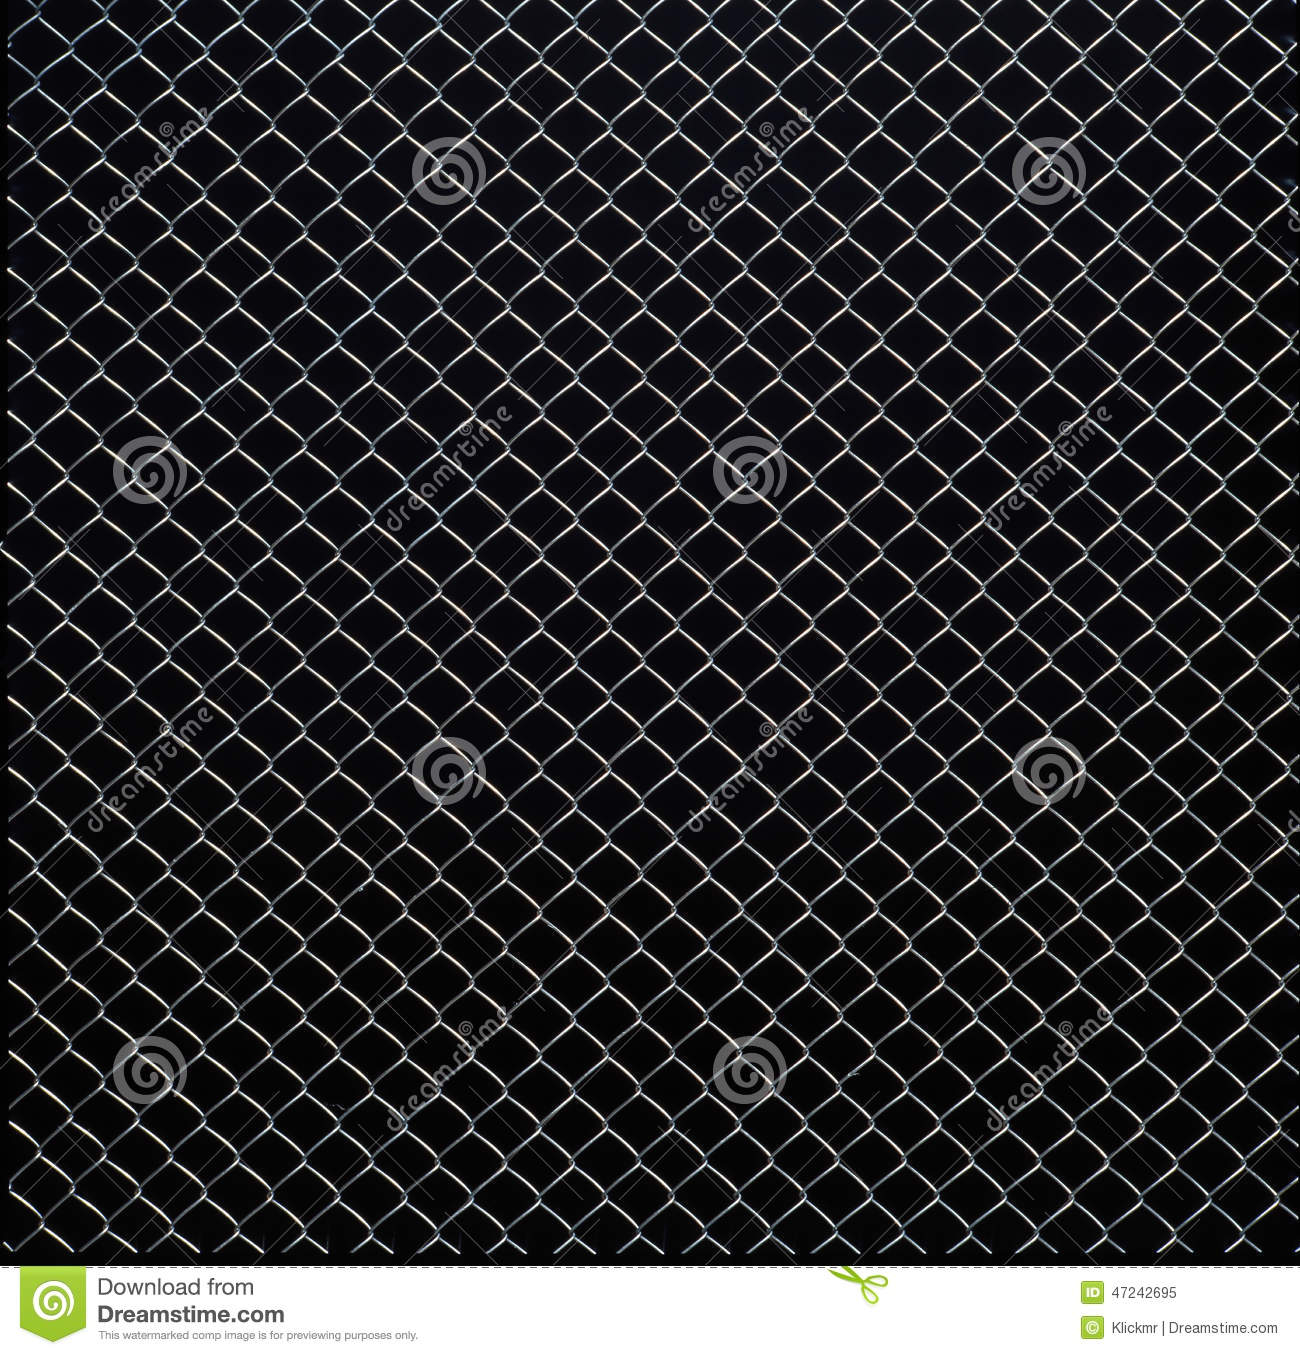 Black Wire Cloth : Wire mesh texture on black background stock image